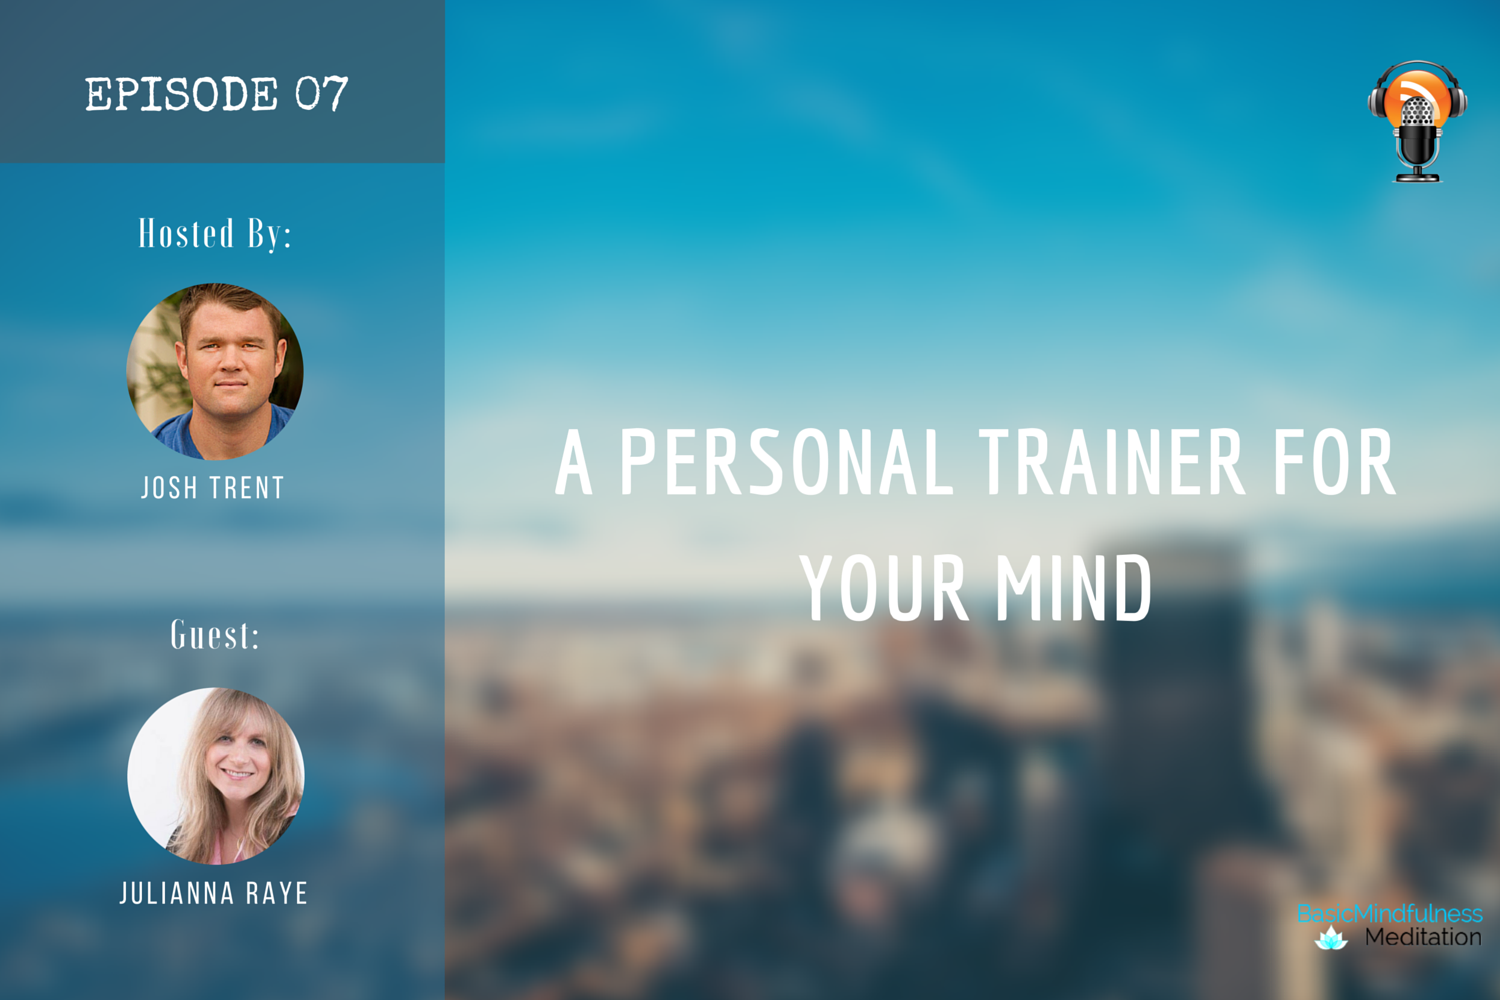 Ep 07: A Personal Trainer for Your Mind